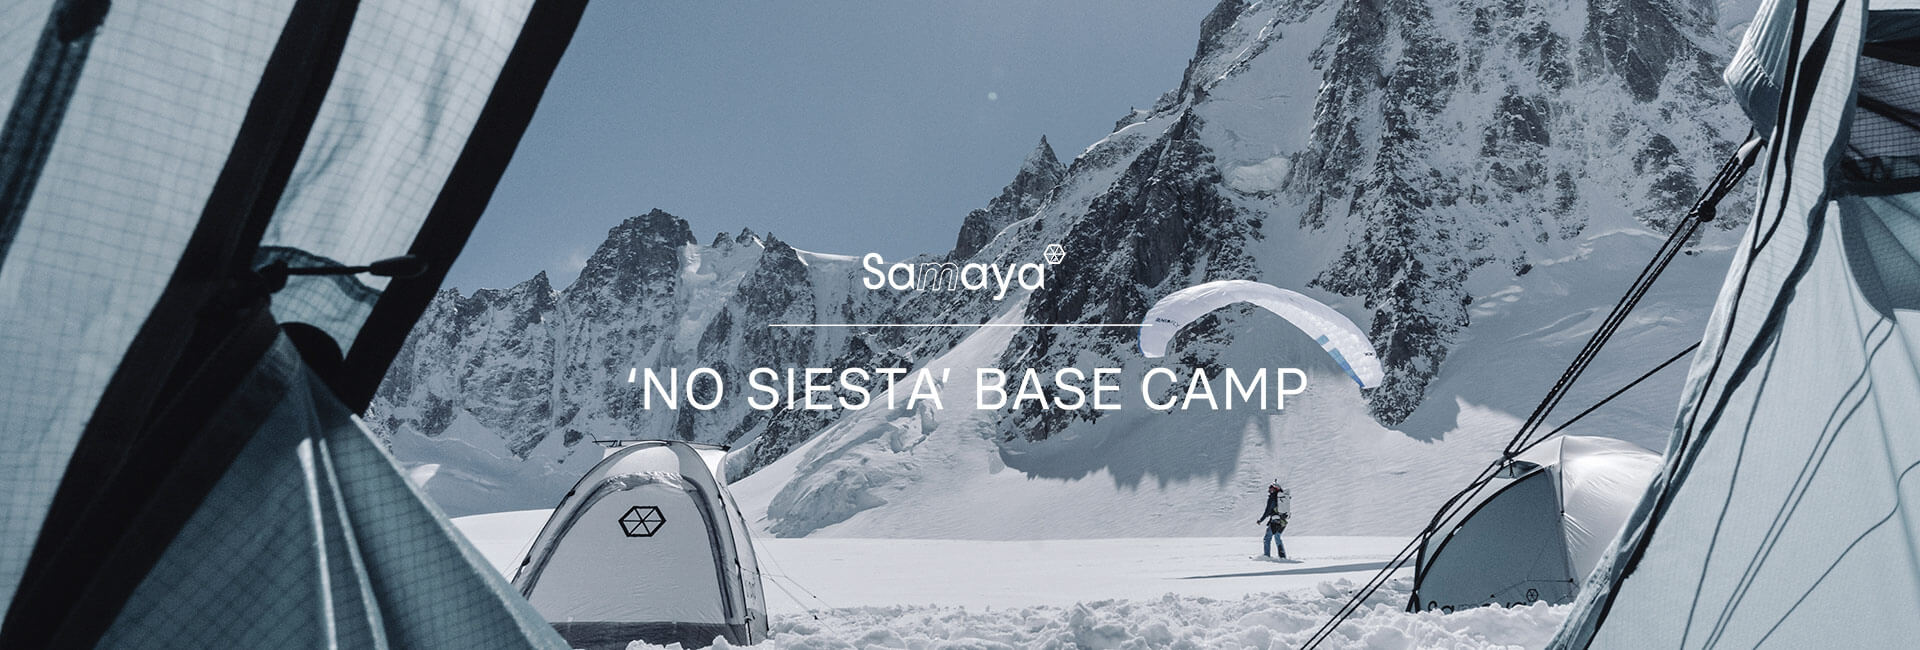 'No Siesta' Base Camp